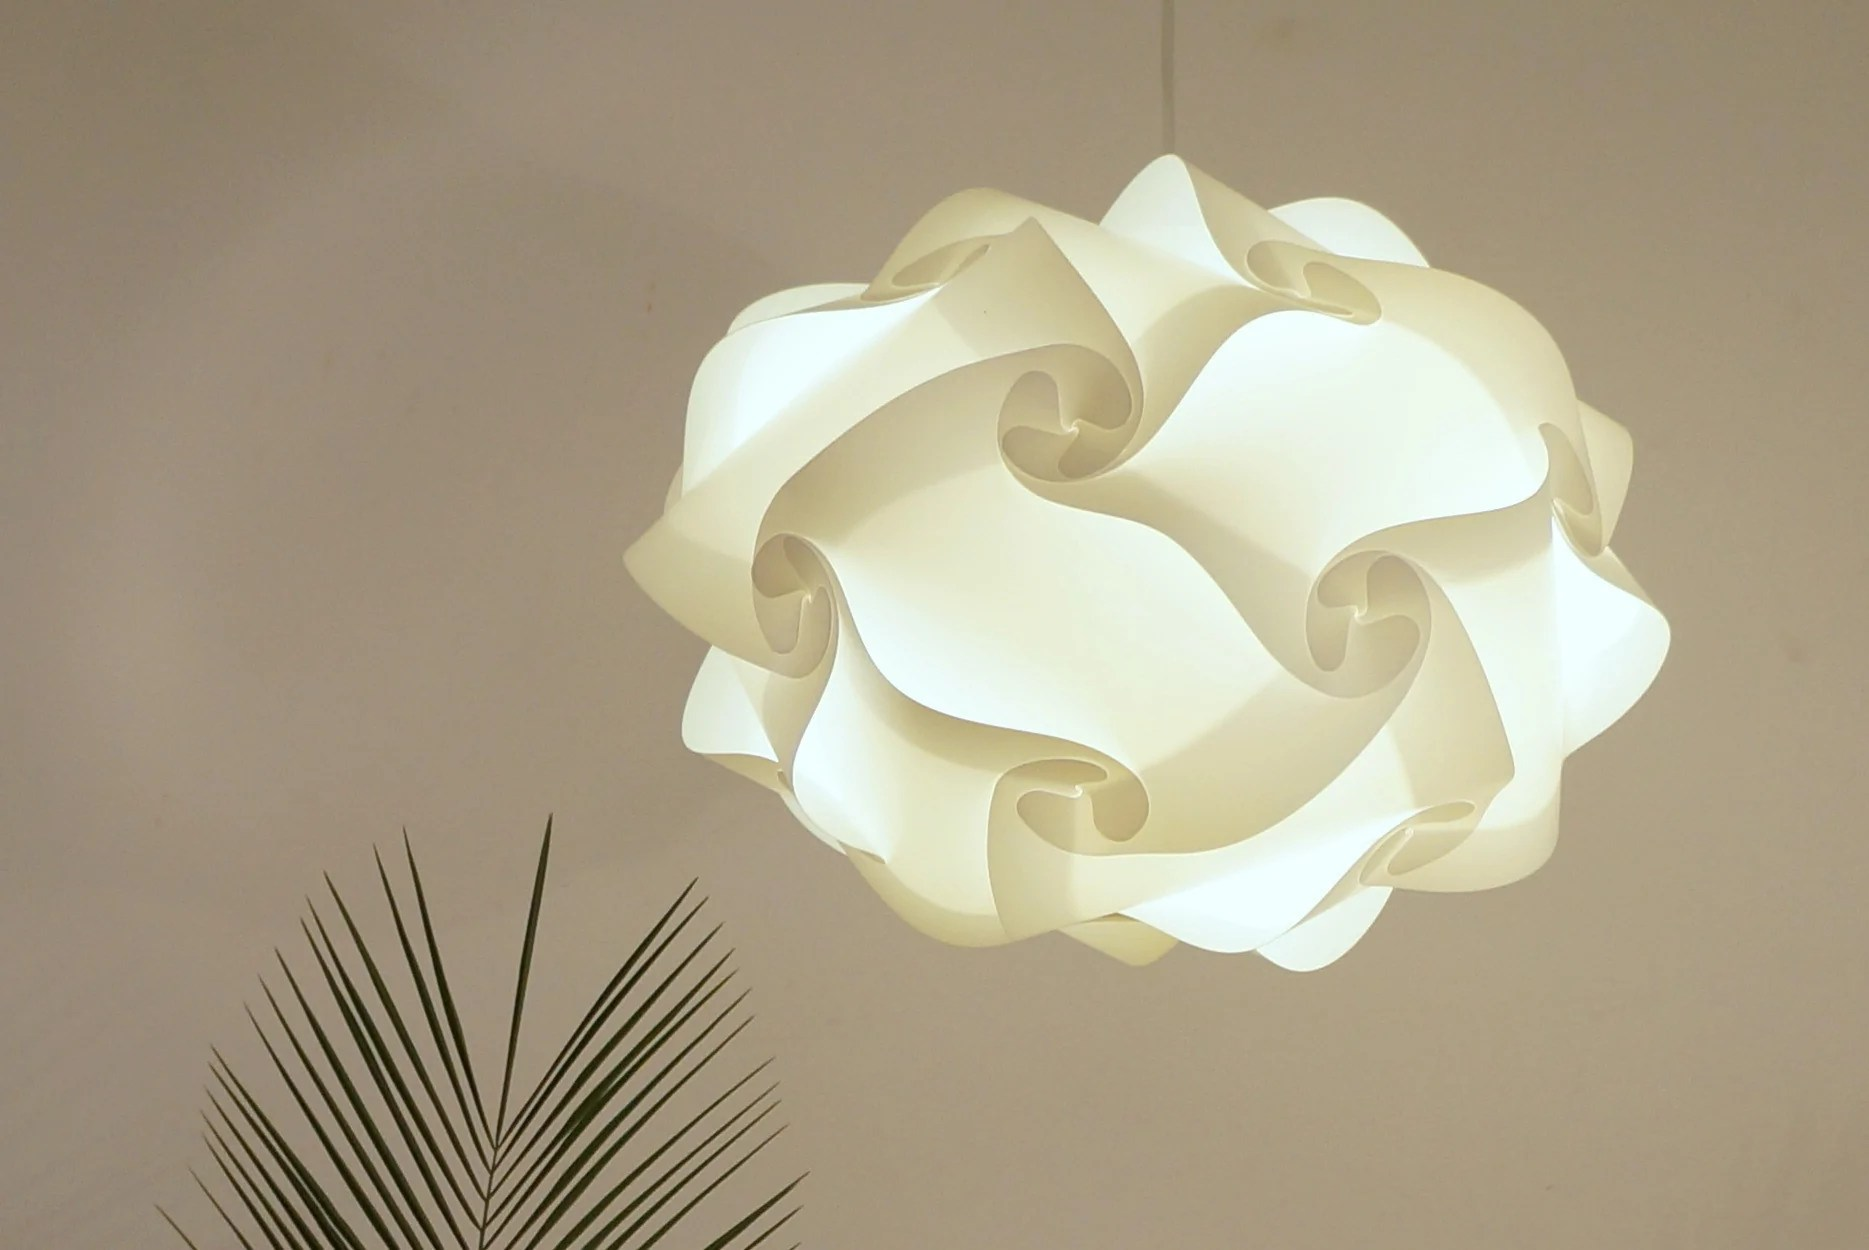 Ceiling Light Shades Smarty Lamps Tukia Ceiling Light Shade